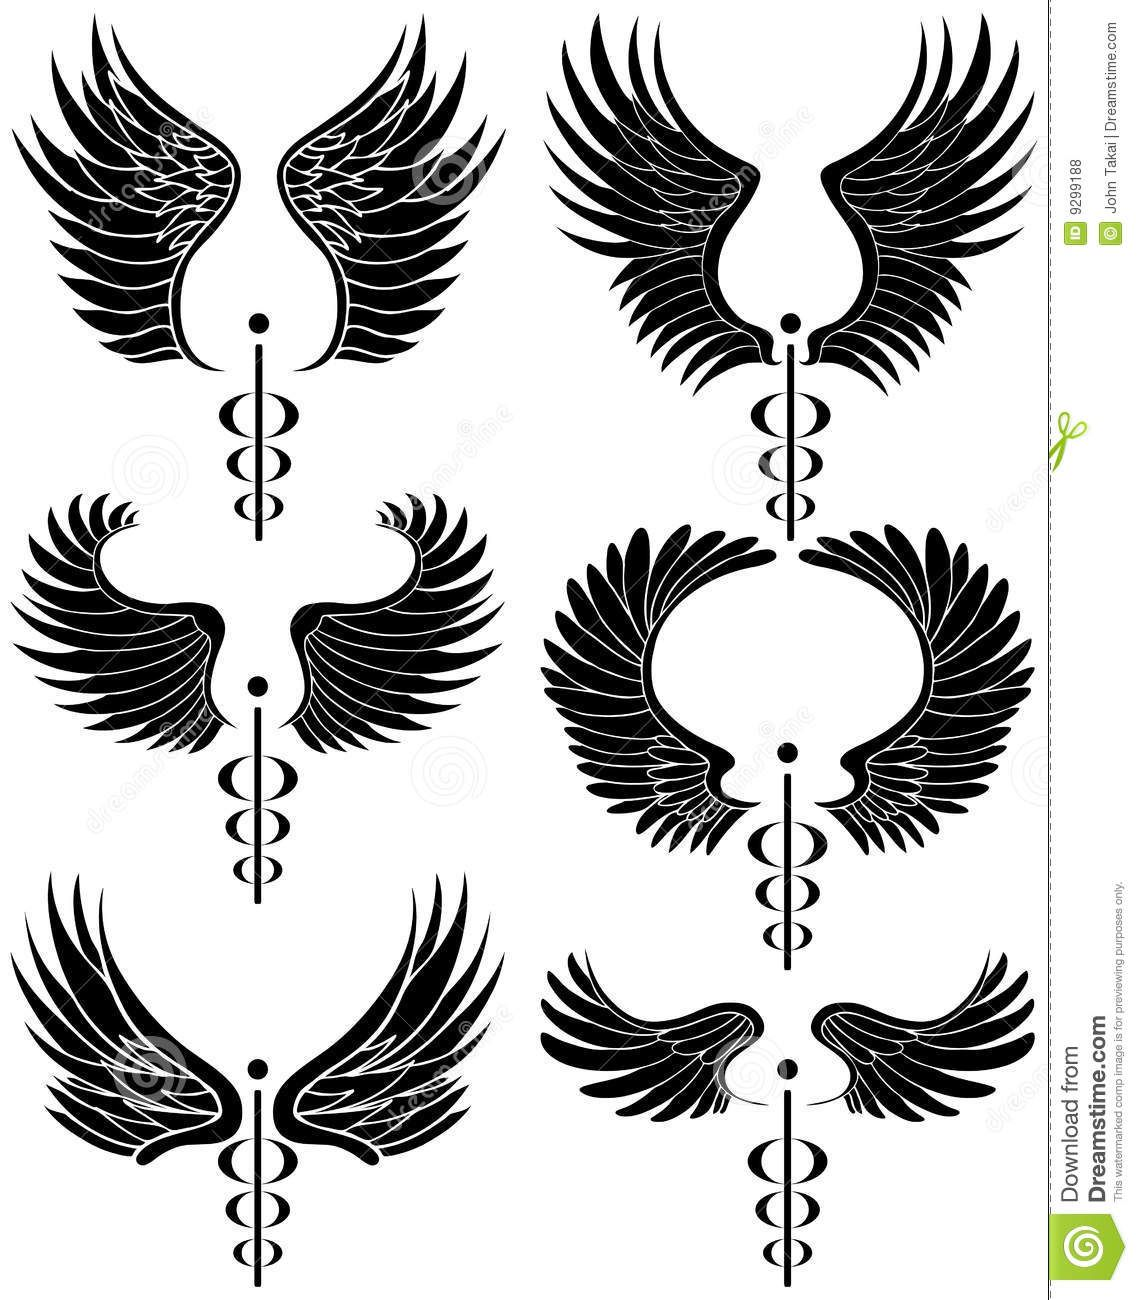 The caduceus coil google search meta pinterest tattoo caduceus medical symbol set of 6 black and white buycottarizona Gallery